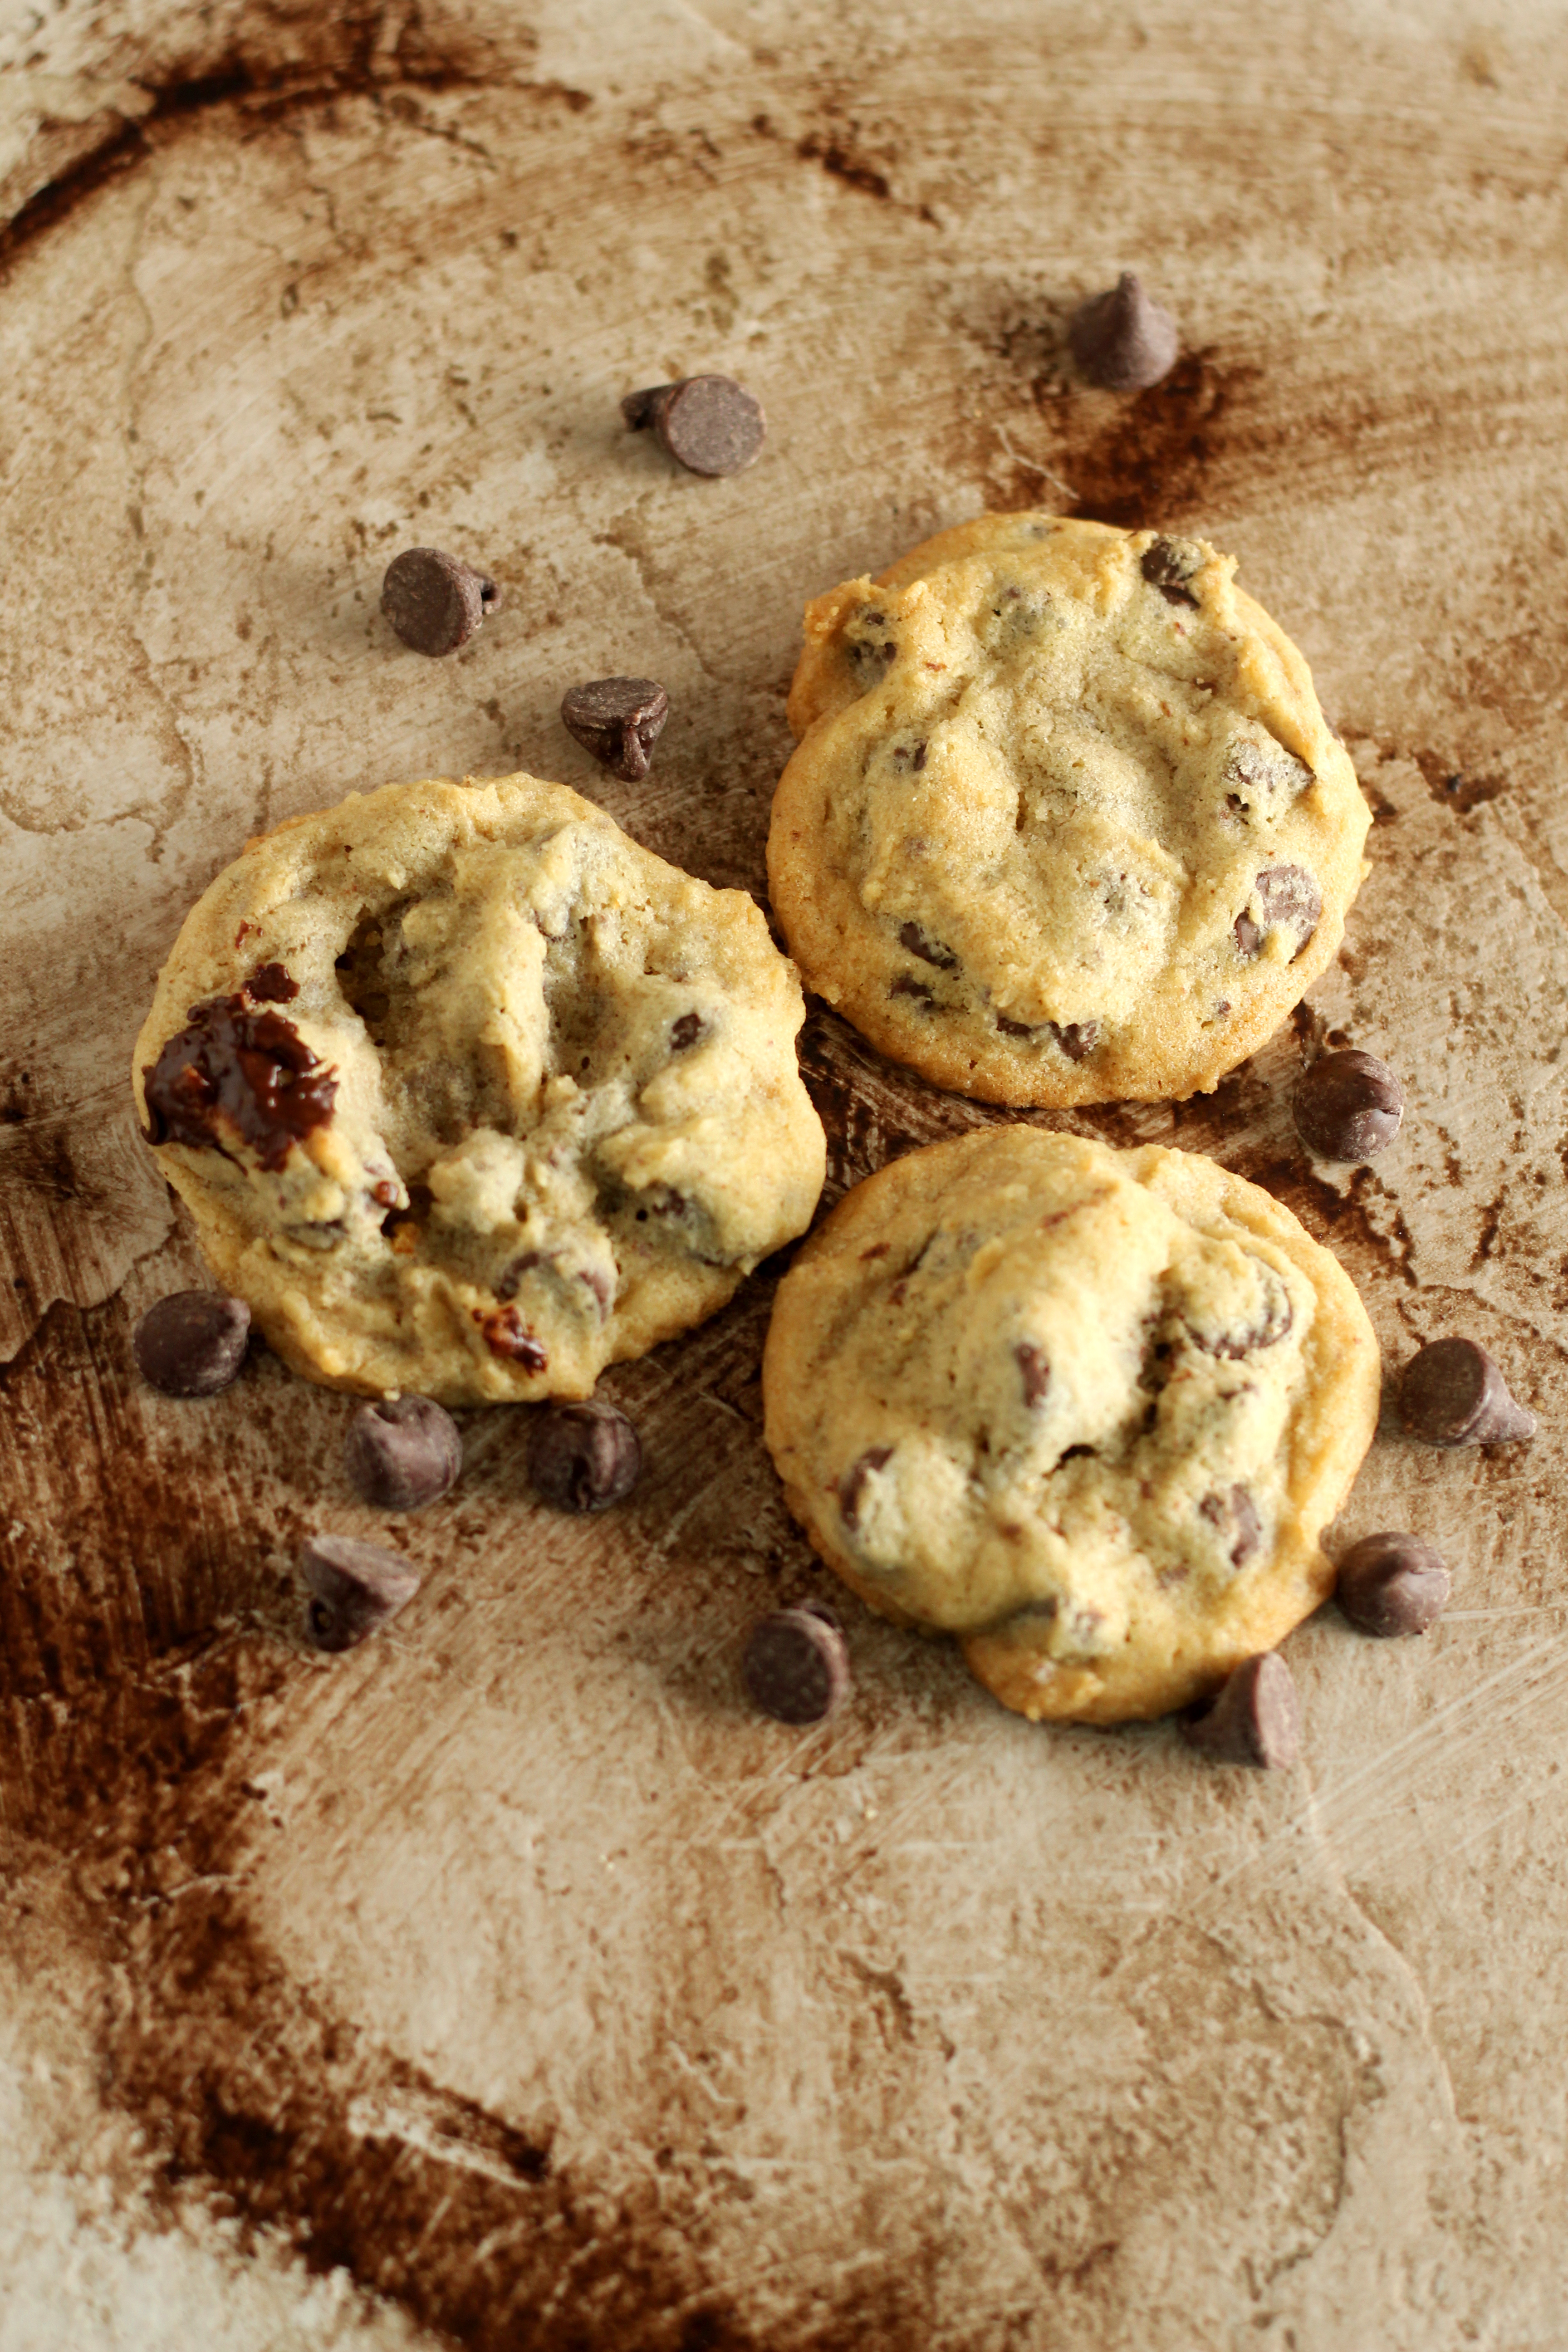 Chocolate Chip and Chunk Cookies - Gather for Bread